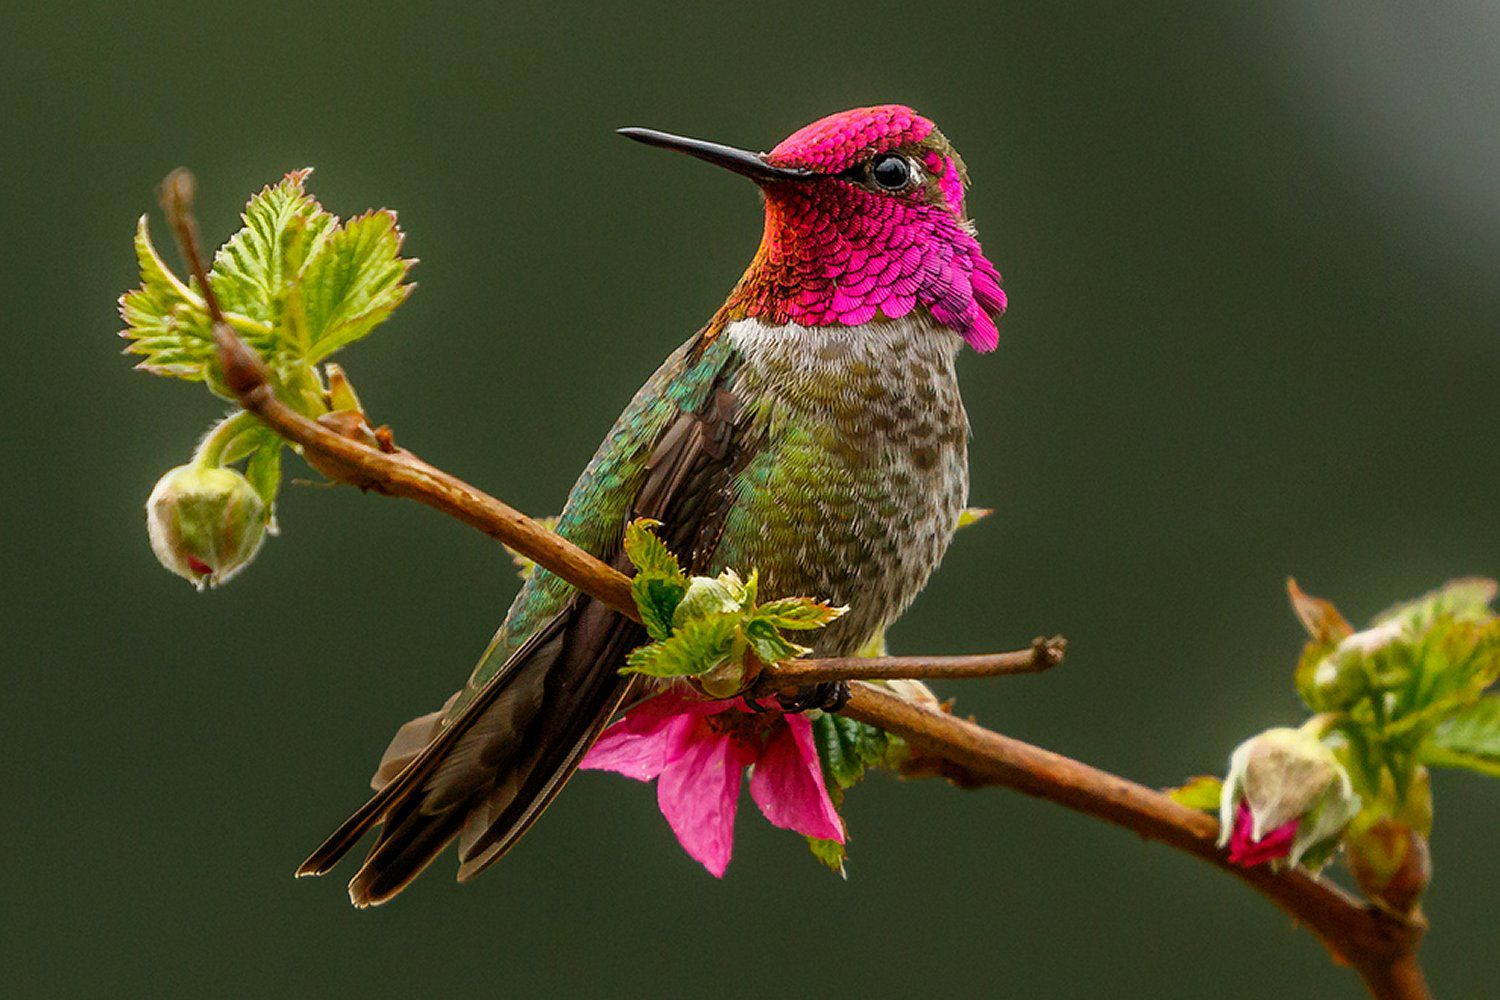 Easy And Safe Perches For Hummingbirds